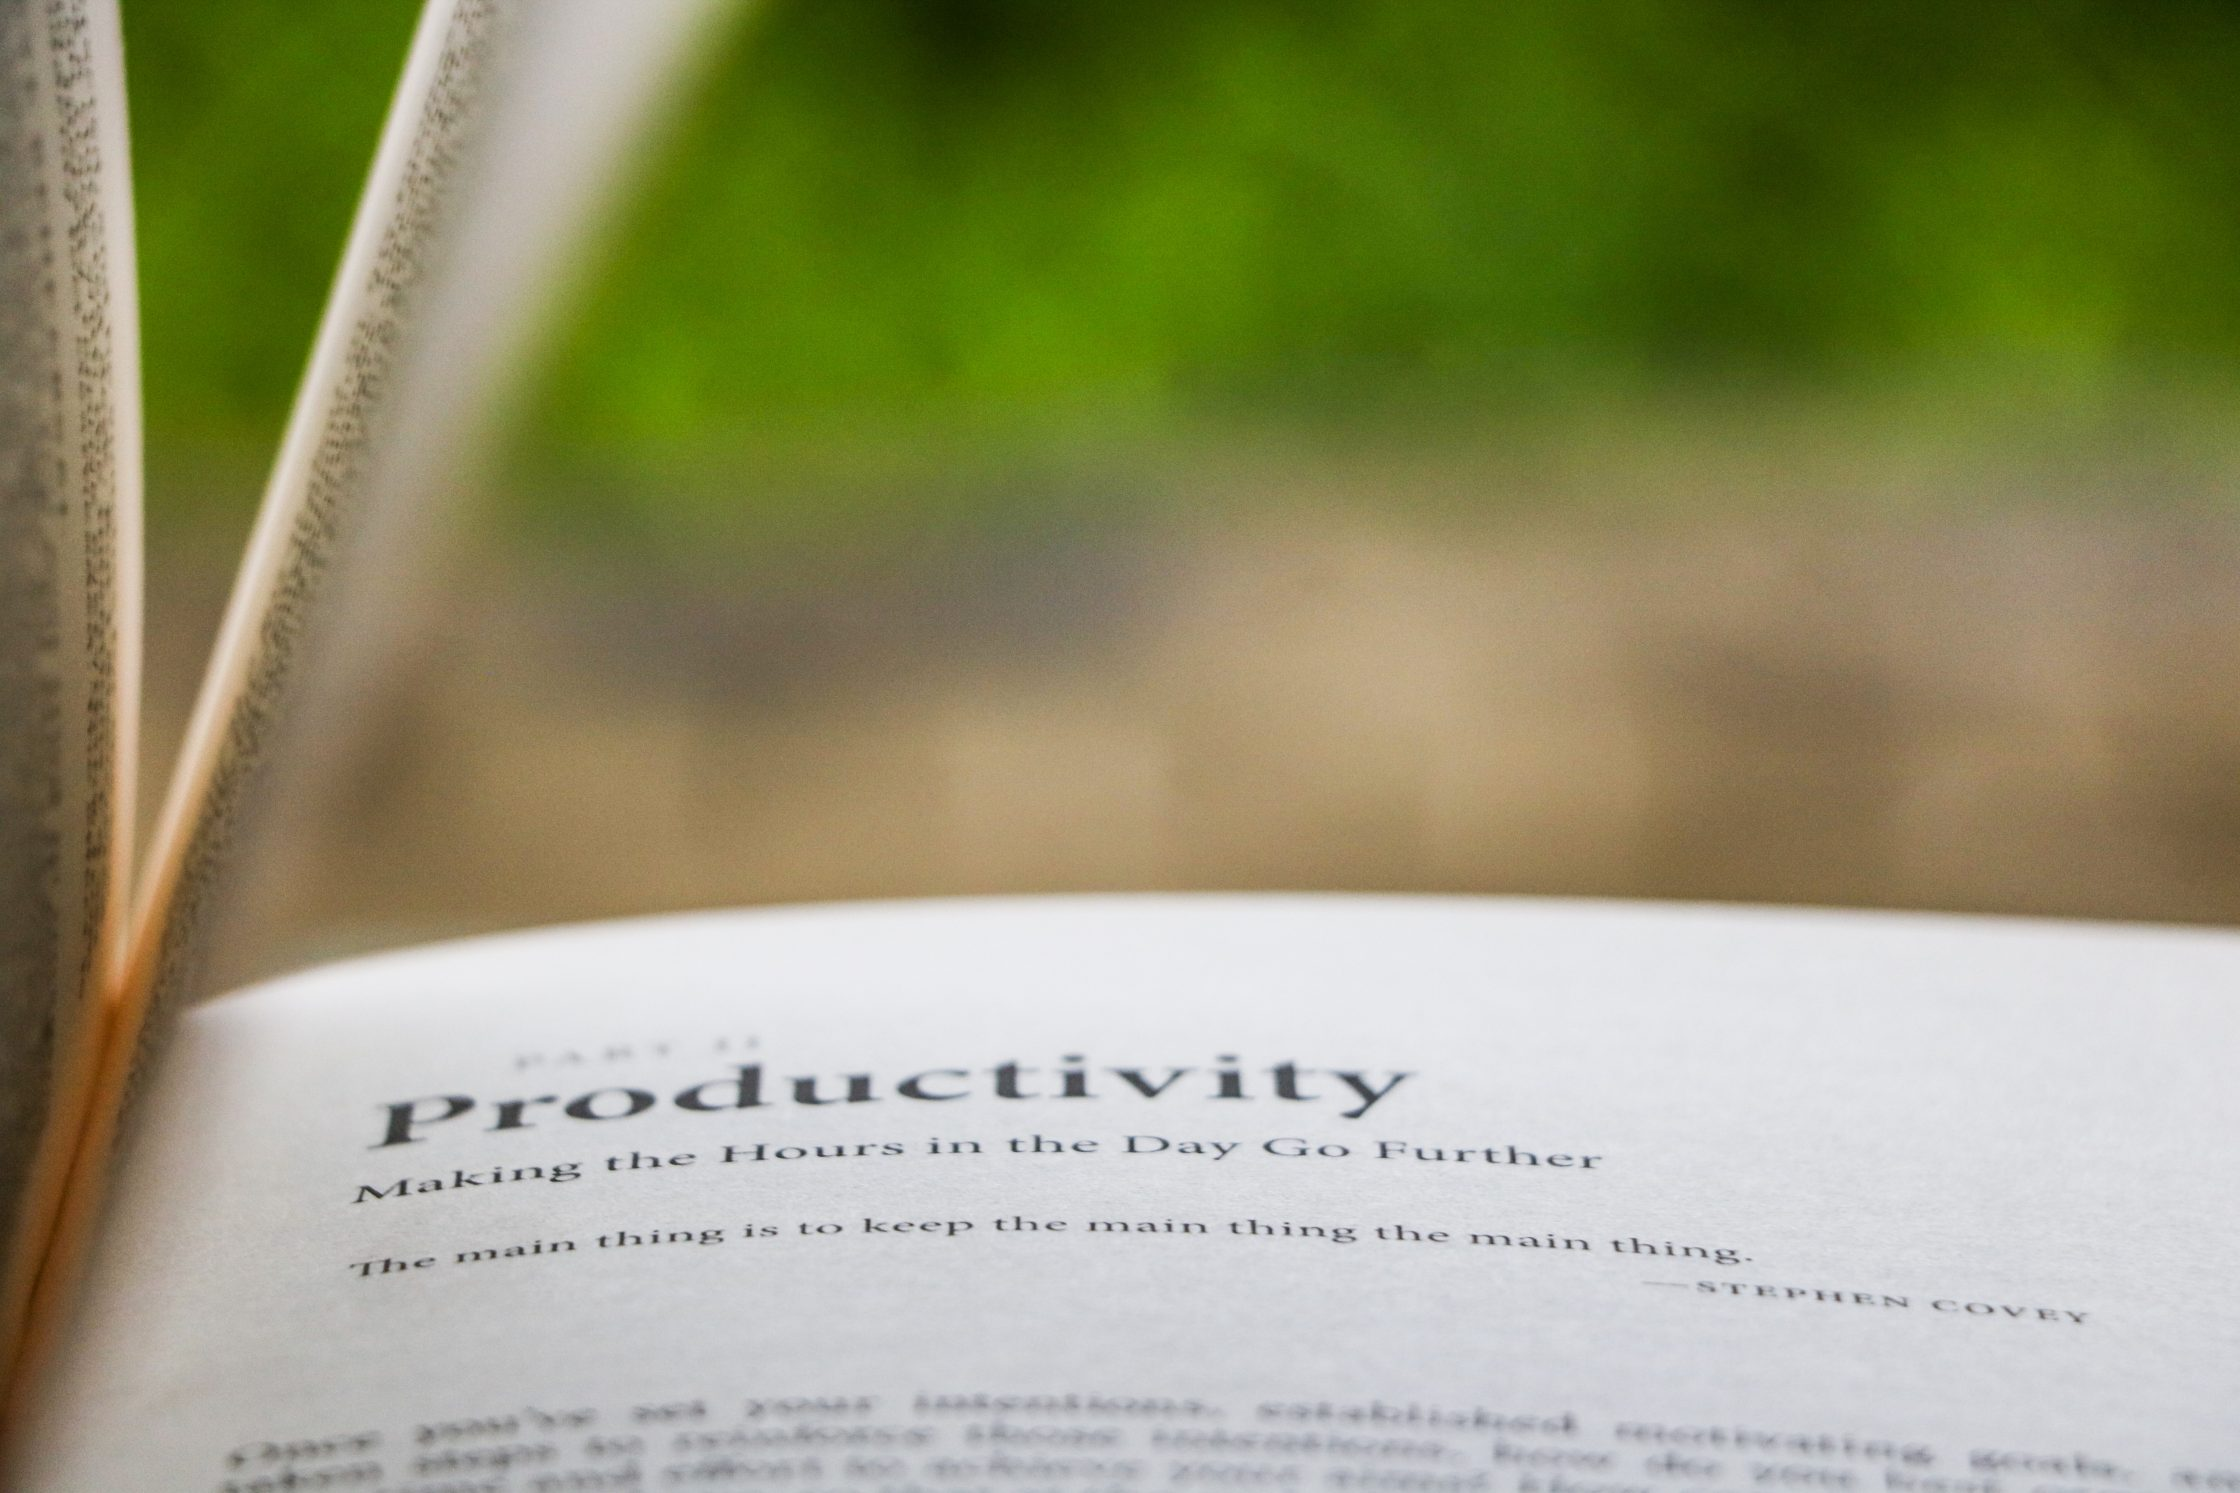 book open to the word productivity